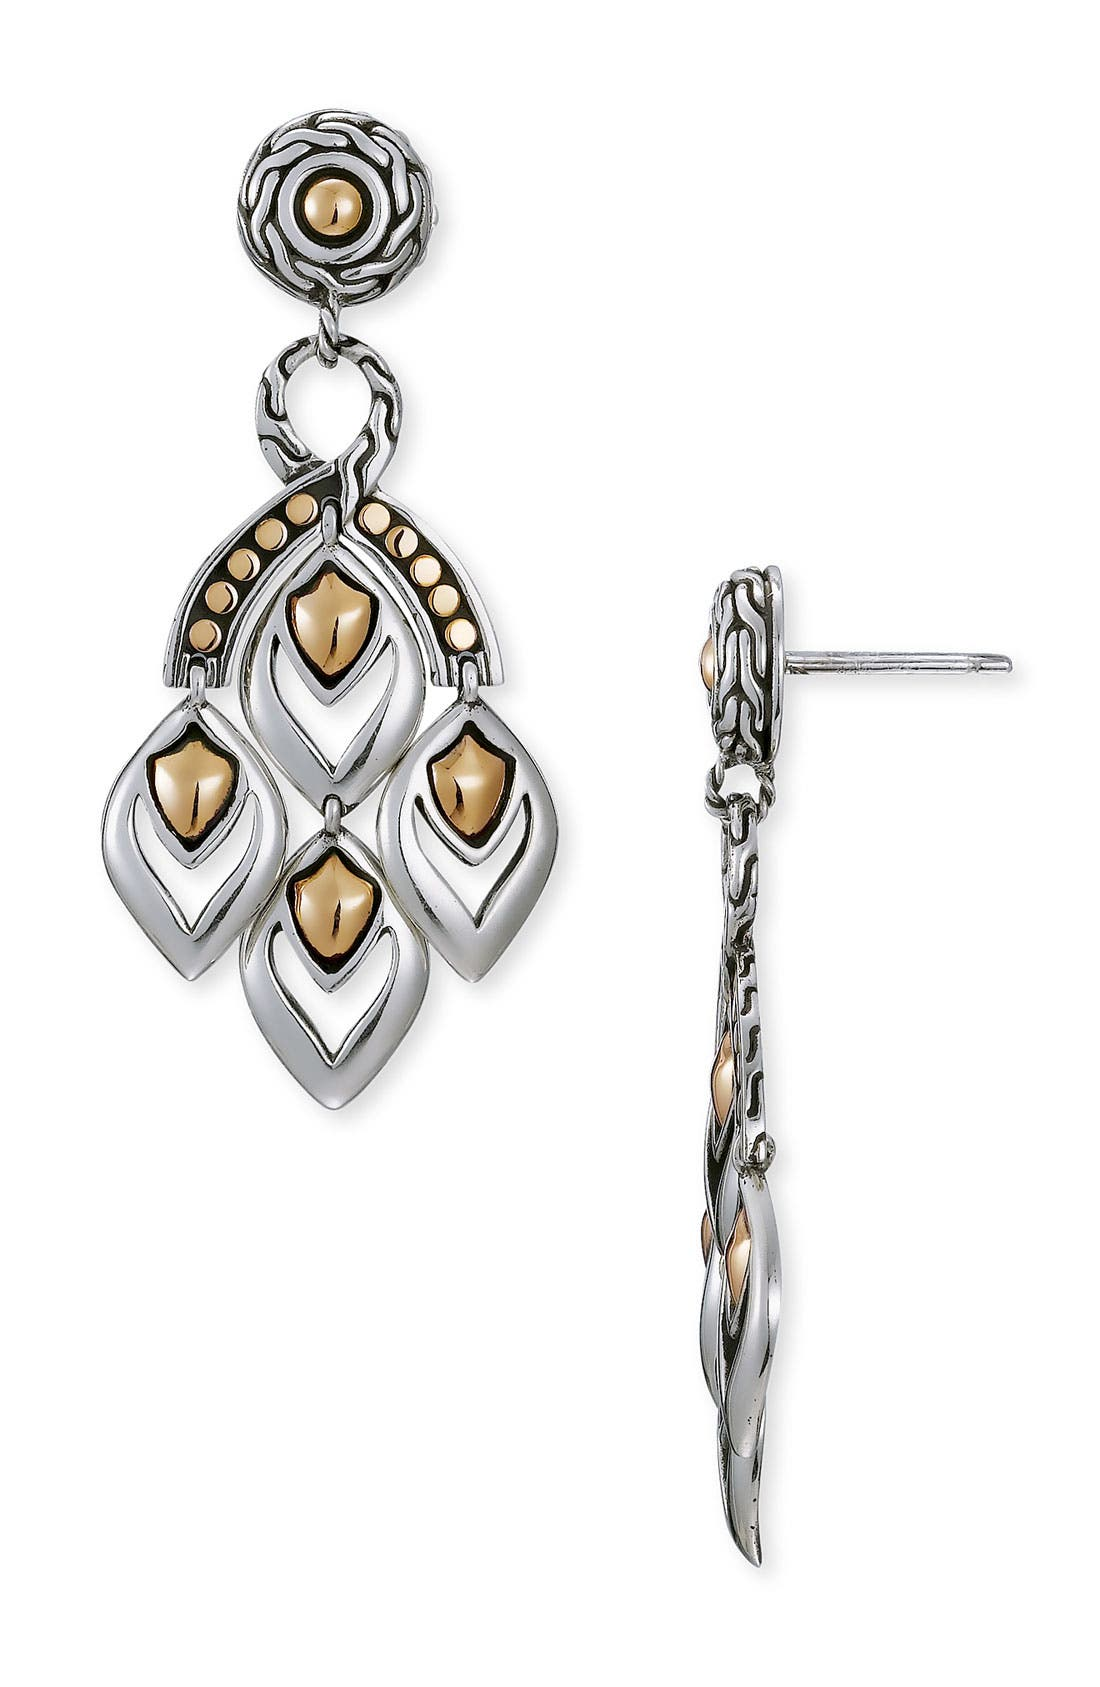 Main Image - John Hardy 'Naga' Mini Chandelier Earrings